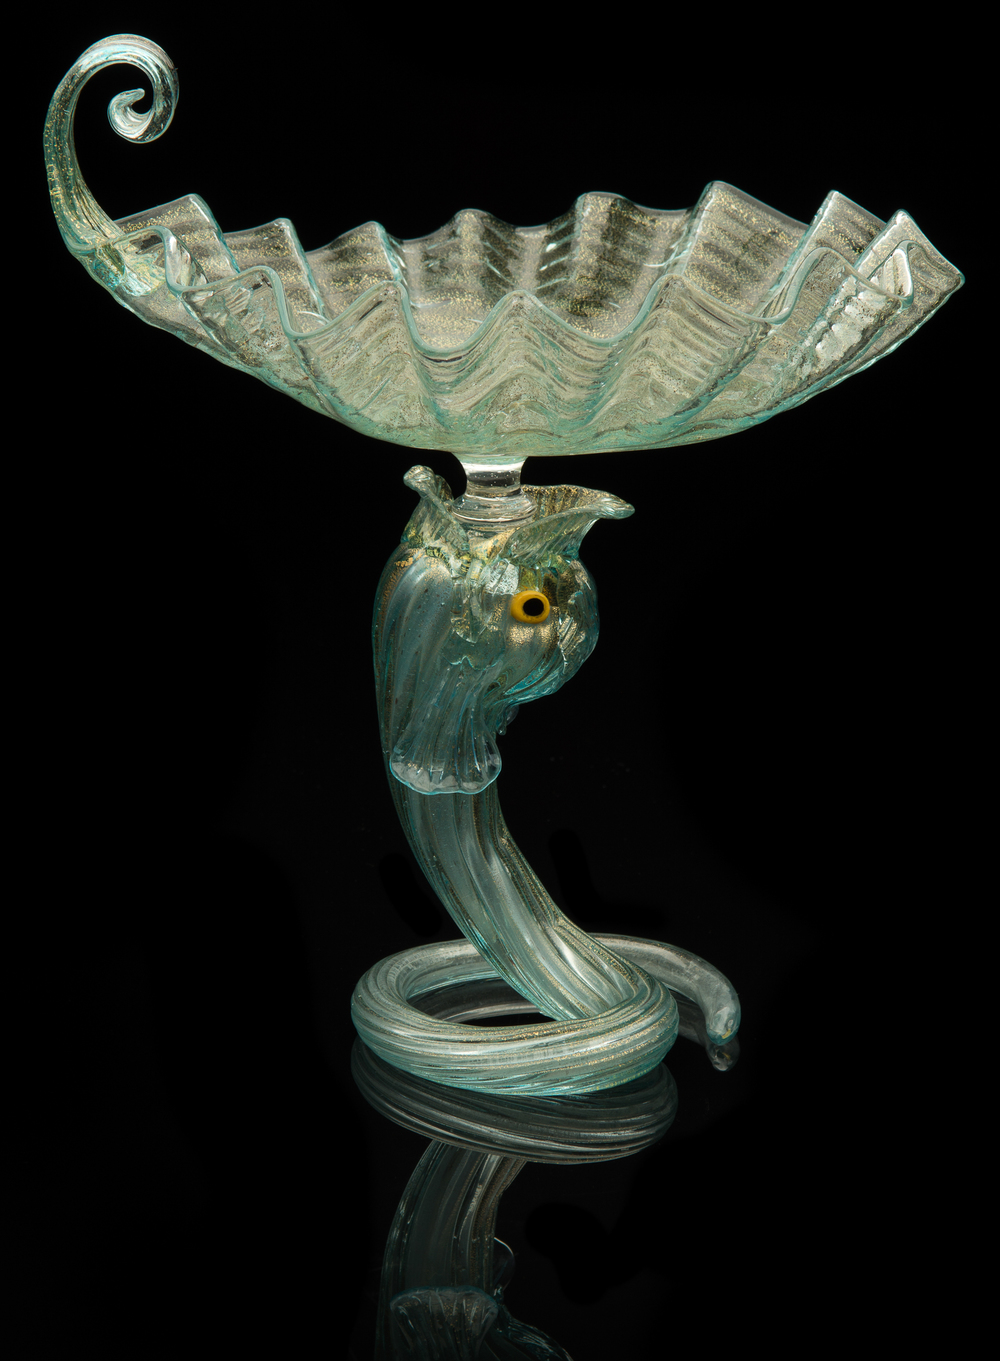 Unknown Venetian,  Aquamarine Serpent Compote  (glass), VV.430